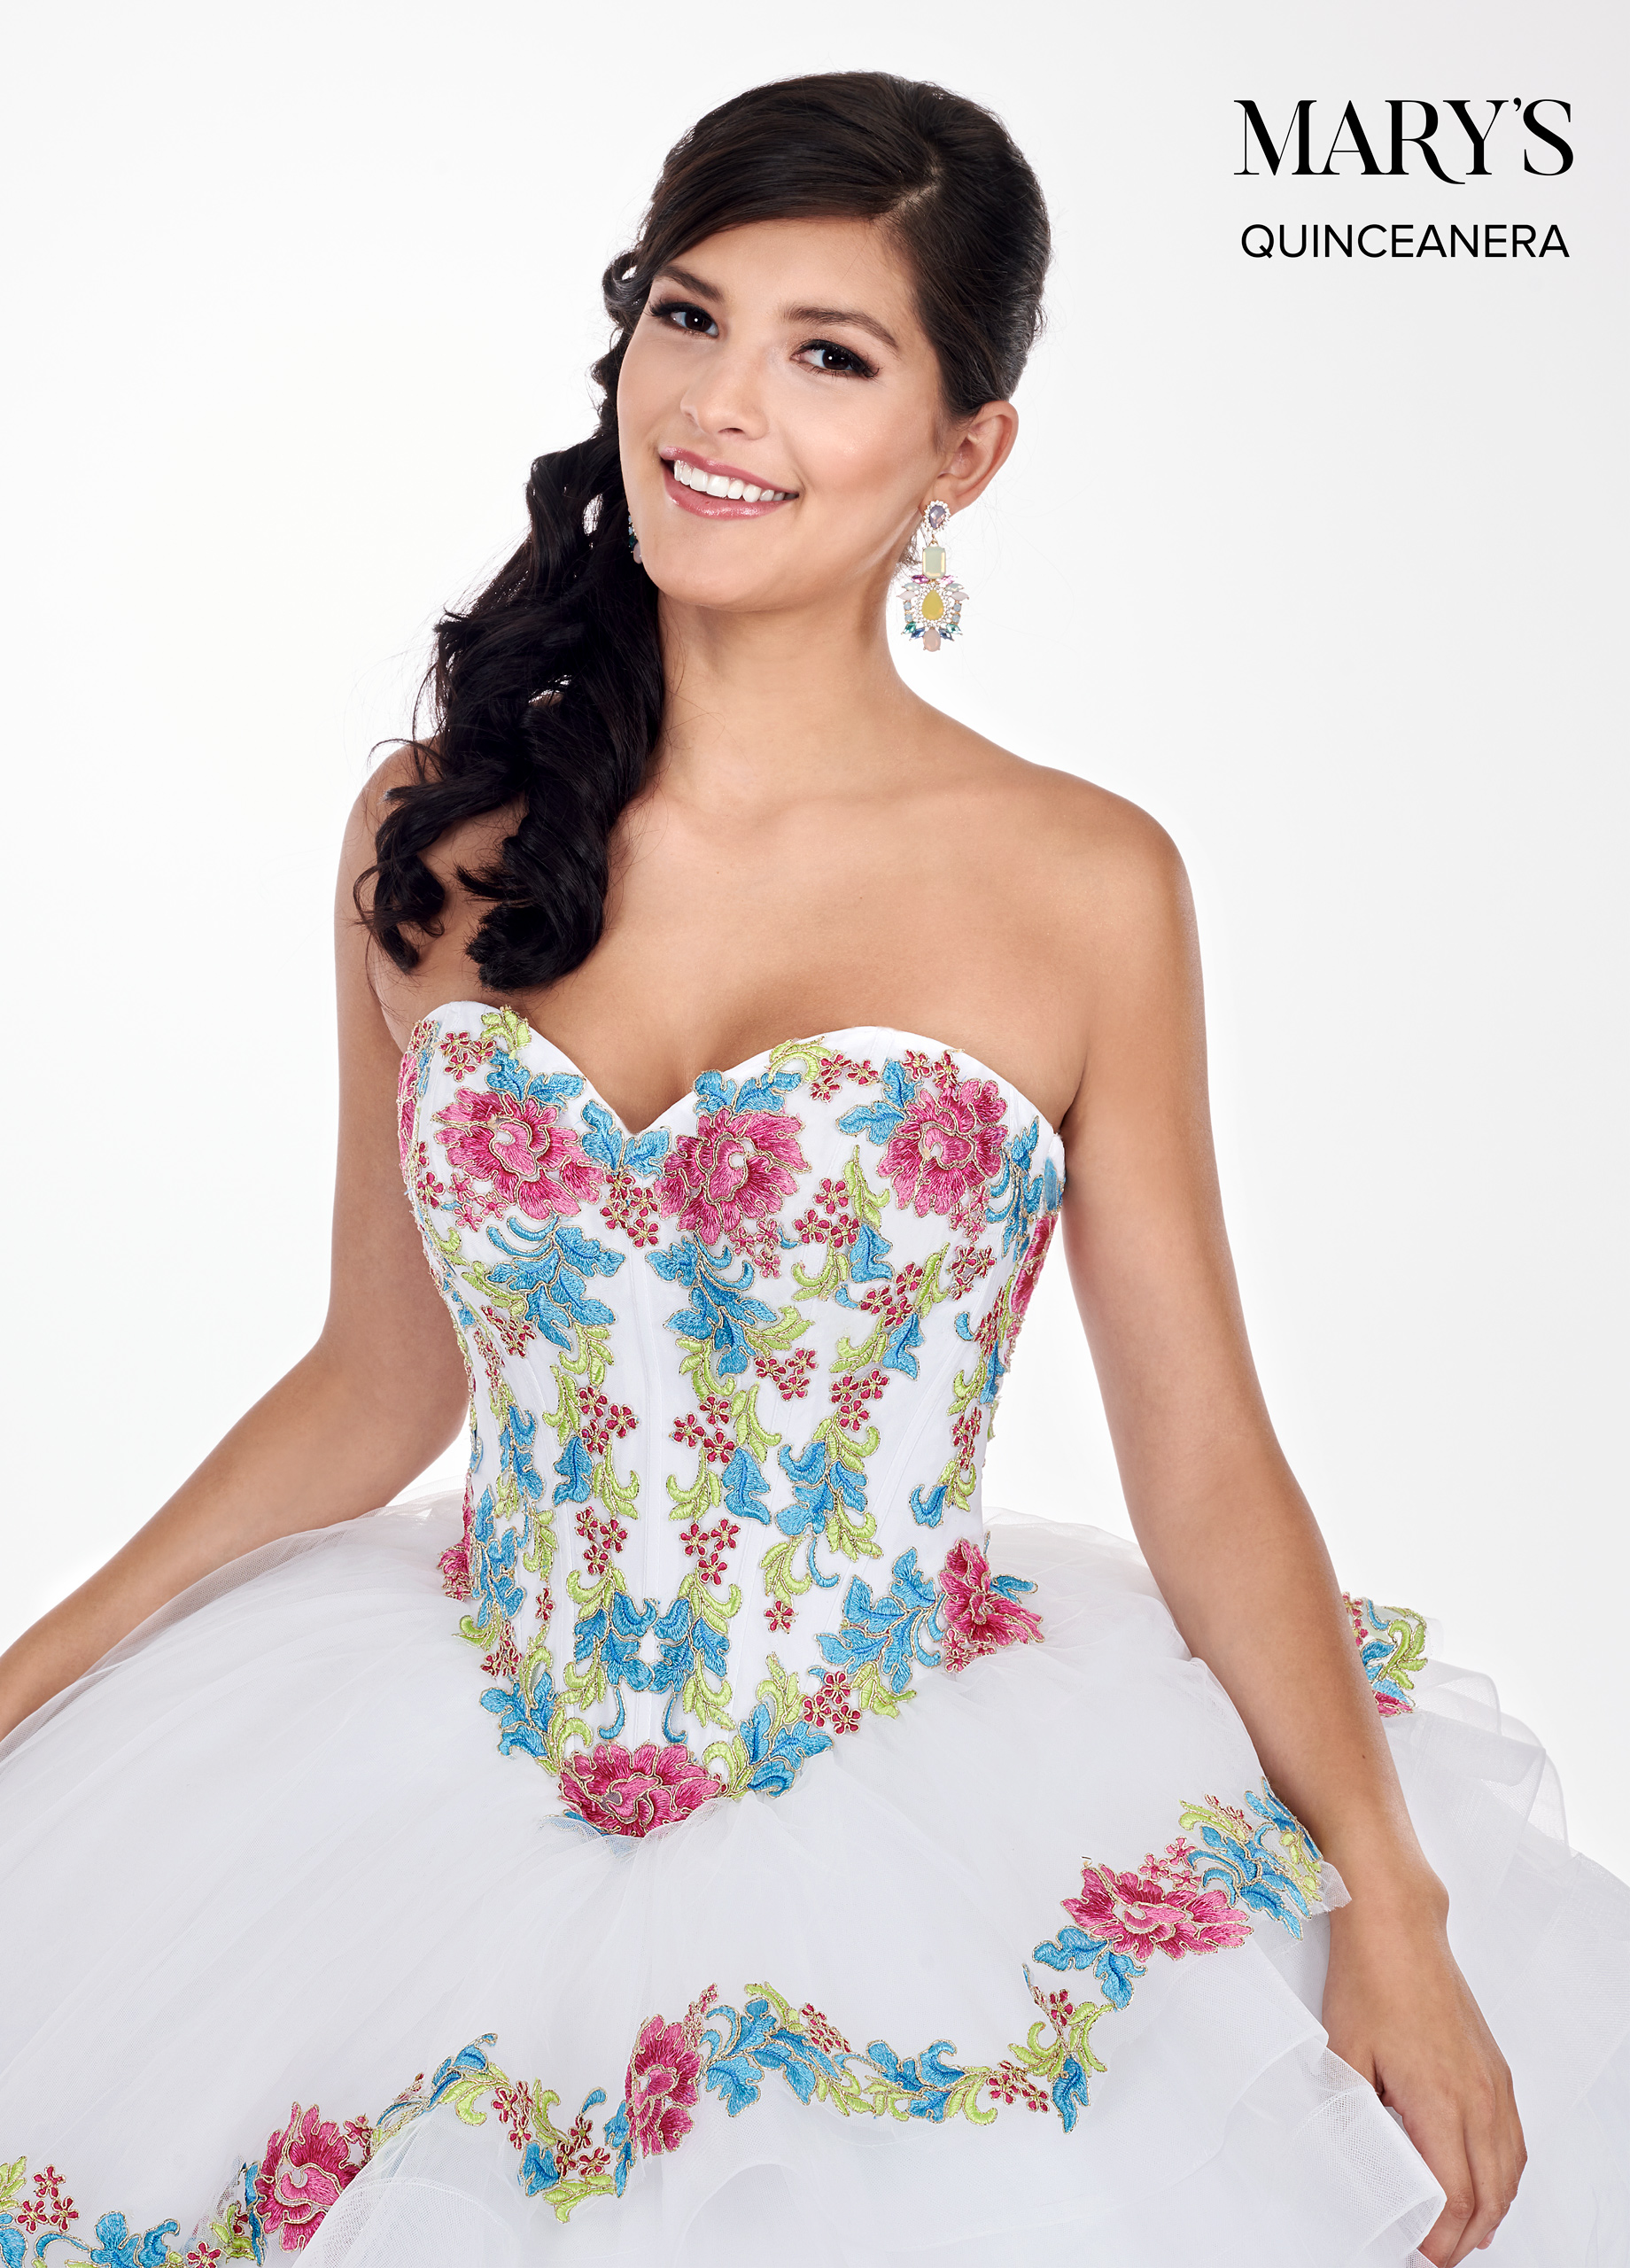 Marys Quinceanera Dresses   Mary's Quinceanera   Style - MQ1038